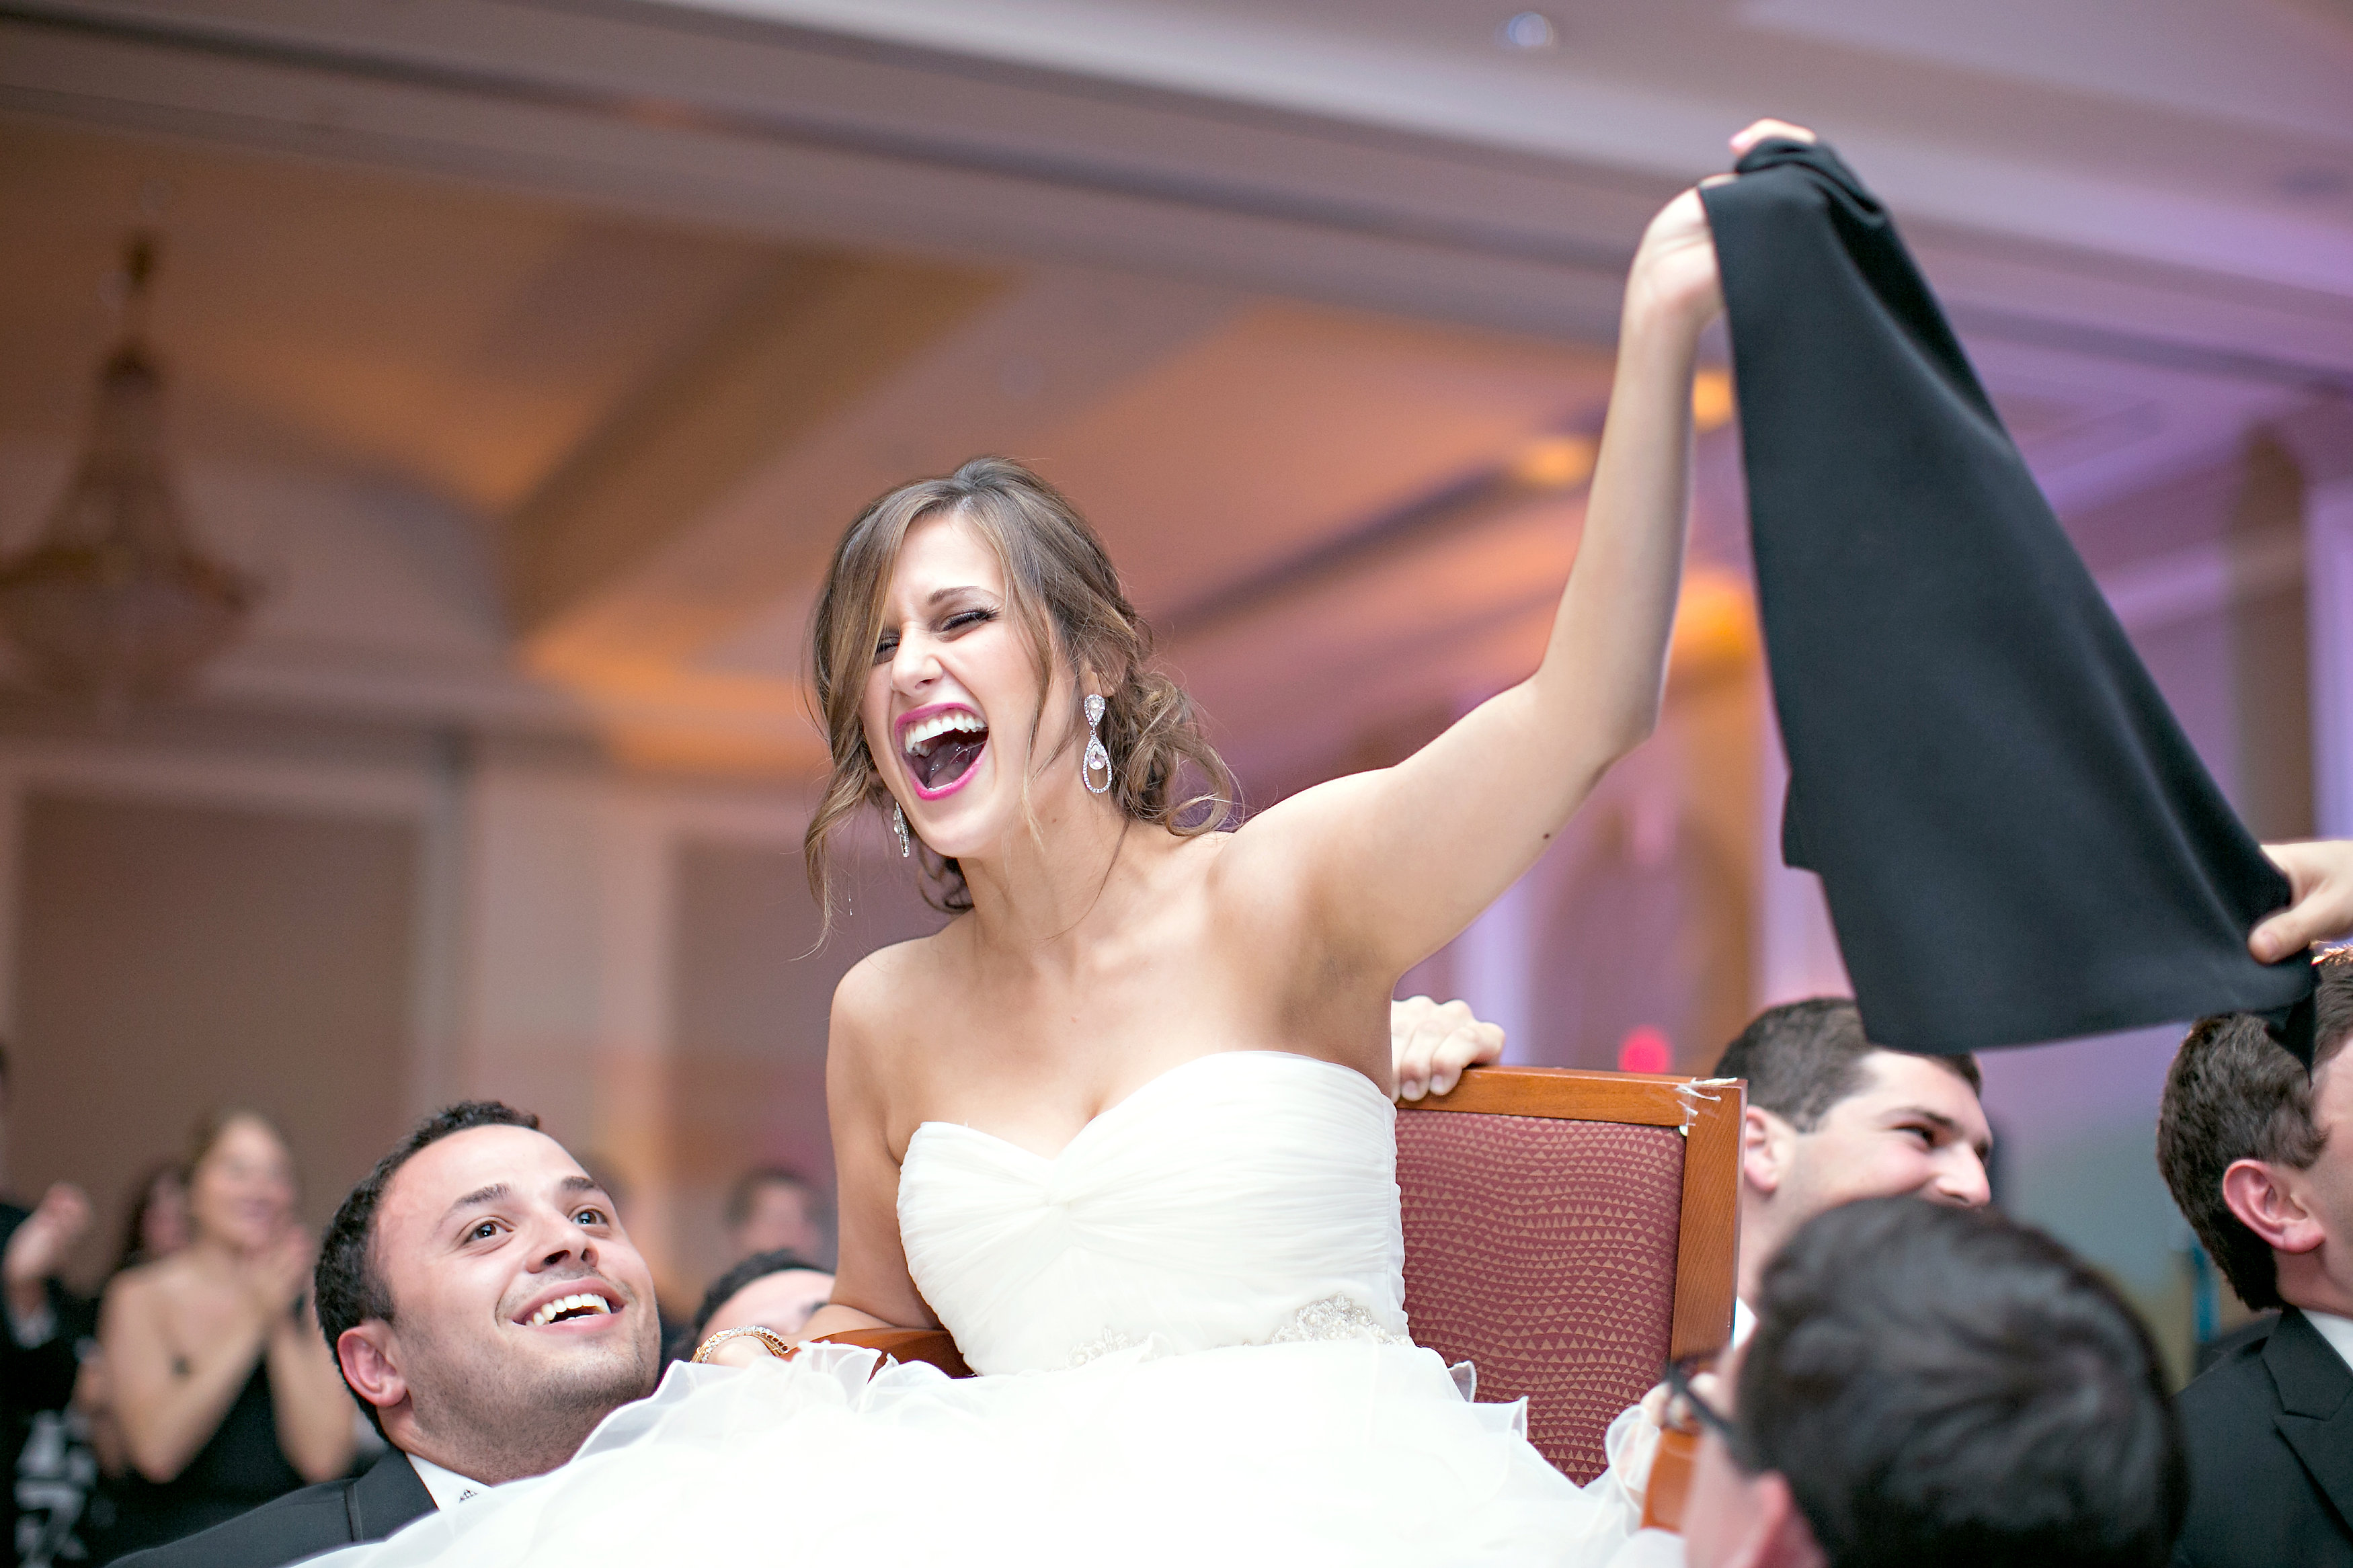 Bride at traditional Hora Chair Dance at Jewish wedding The Temple Atlanta  sc 1 st  Atlanta Wedding Pianist Jennifer McCoy Blaske & The Temple Atlanta Wedding with Jewish Chair Dance Song Jennifer ...